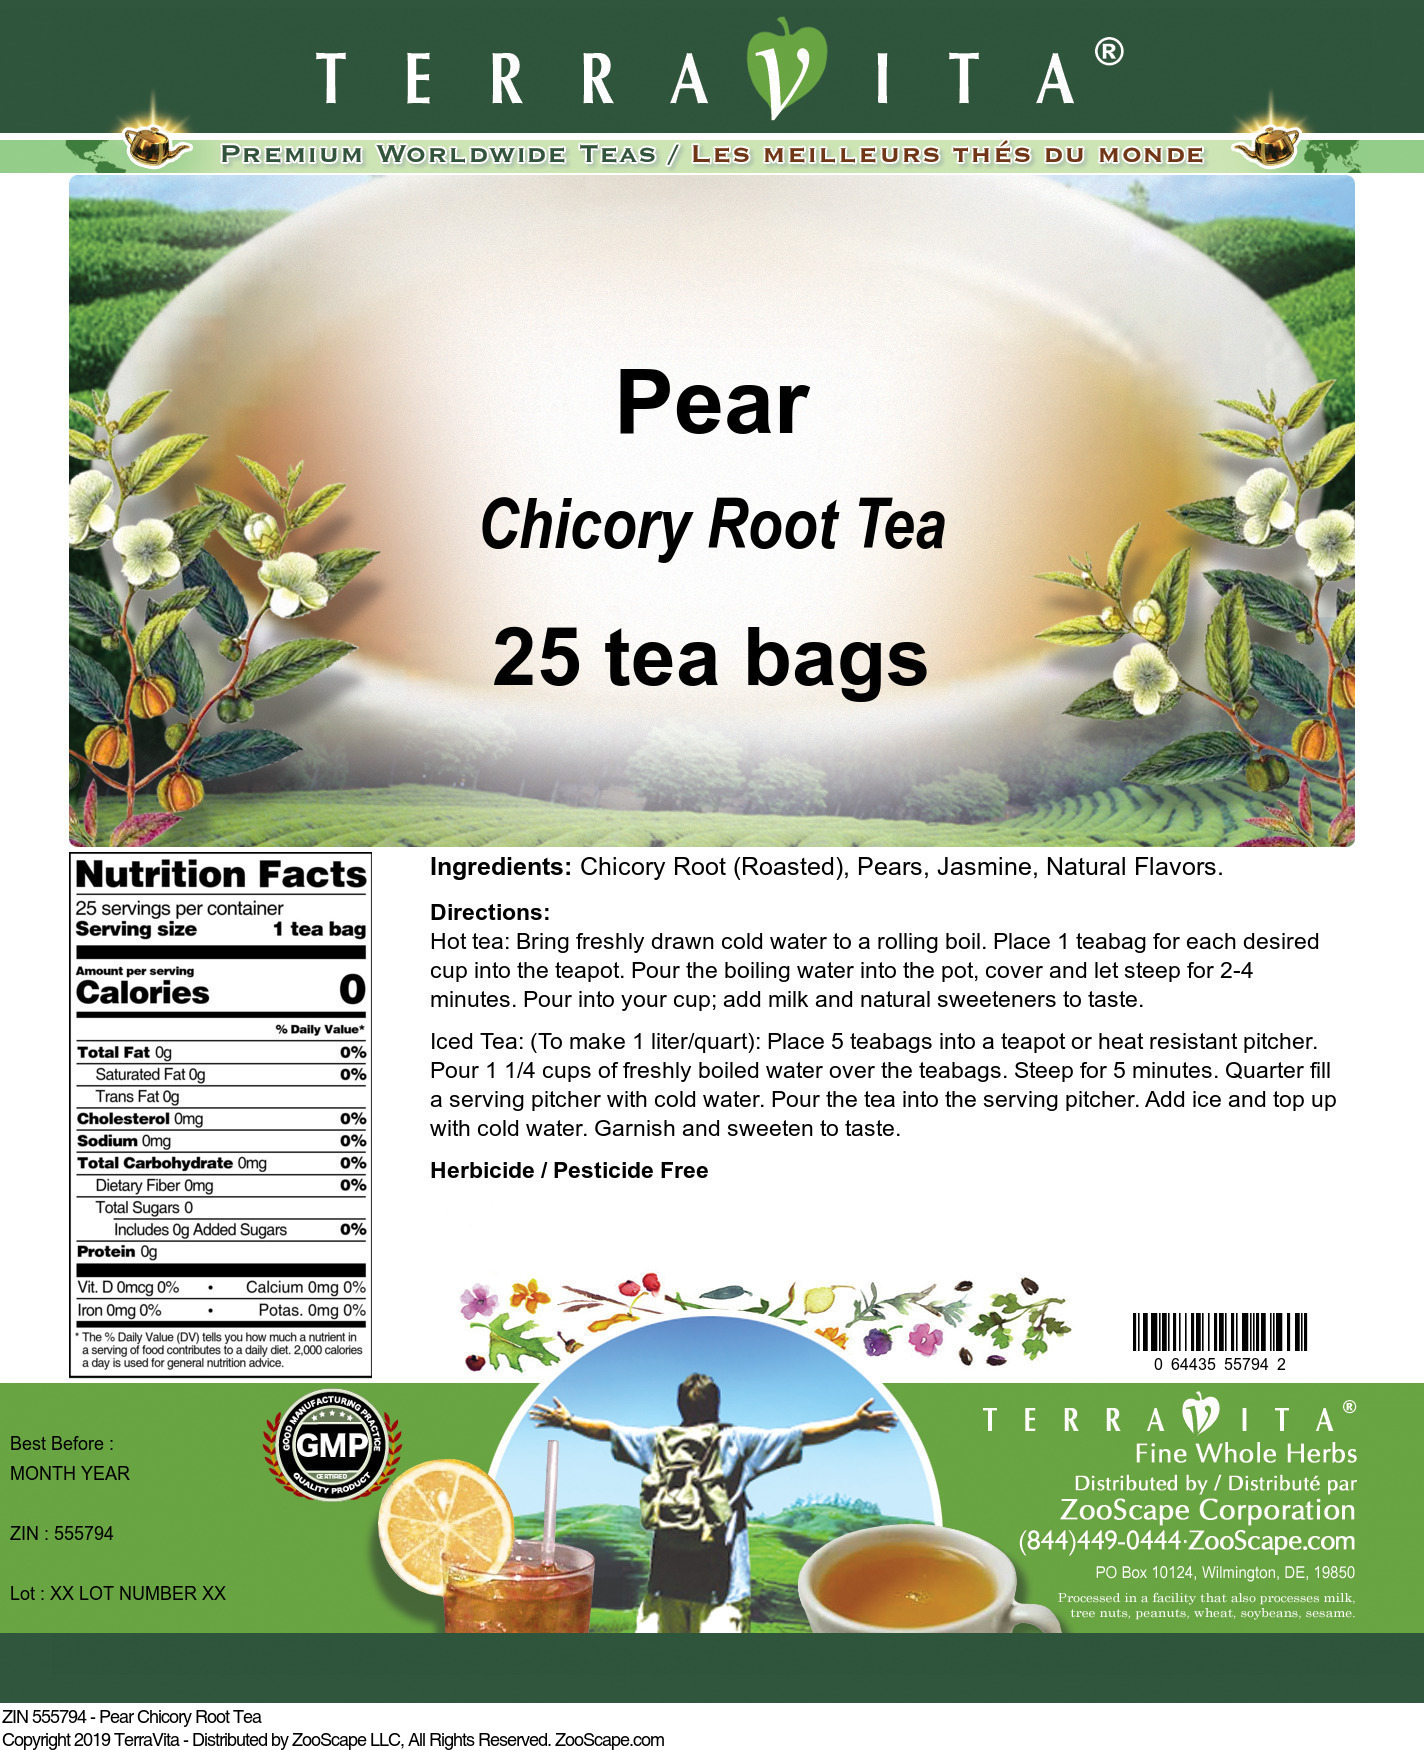 Pear Chicory Root